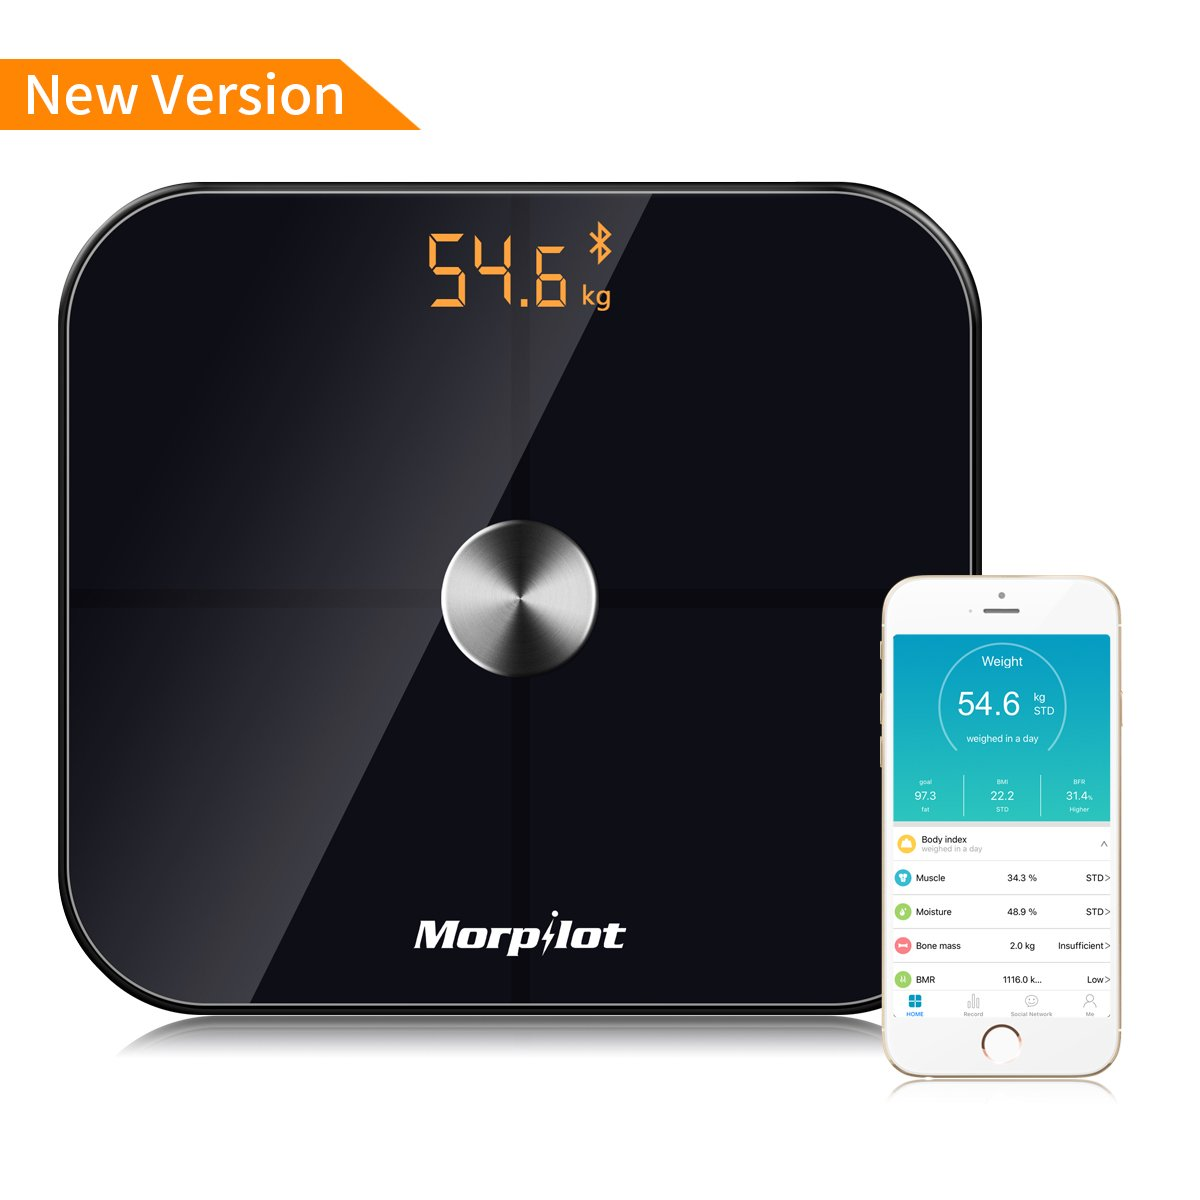 Bluetooth Body Fat Scale,17 Body Metrics, Morilot Smart Digital ITO BMI Weight Bathroom Scale,Body Composition Analyzer Health Monitor with iOS and Android APP, 396 lbs